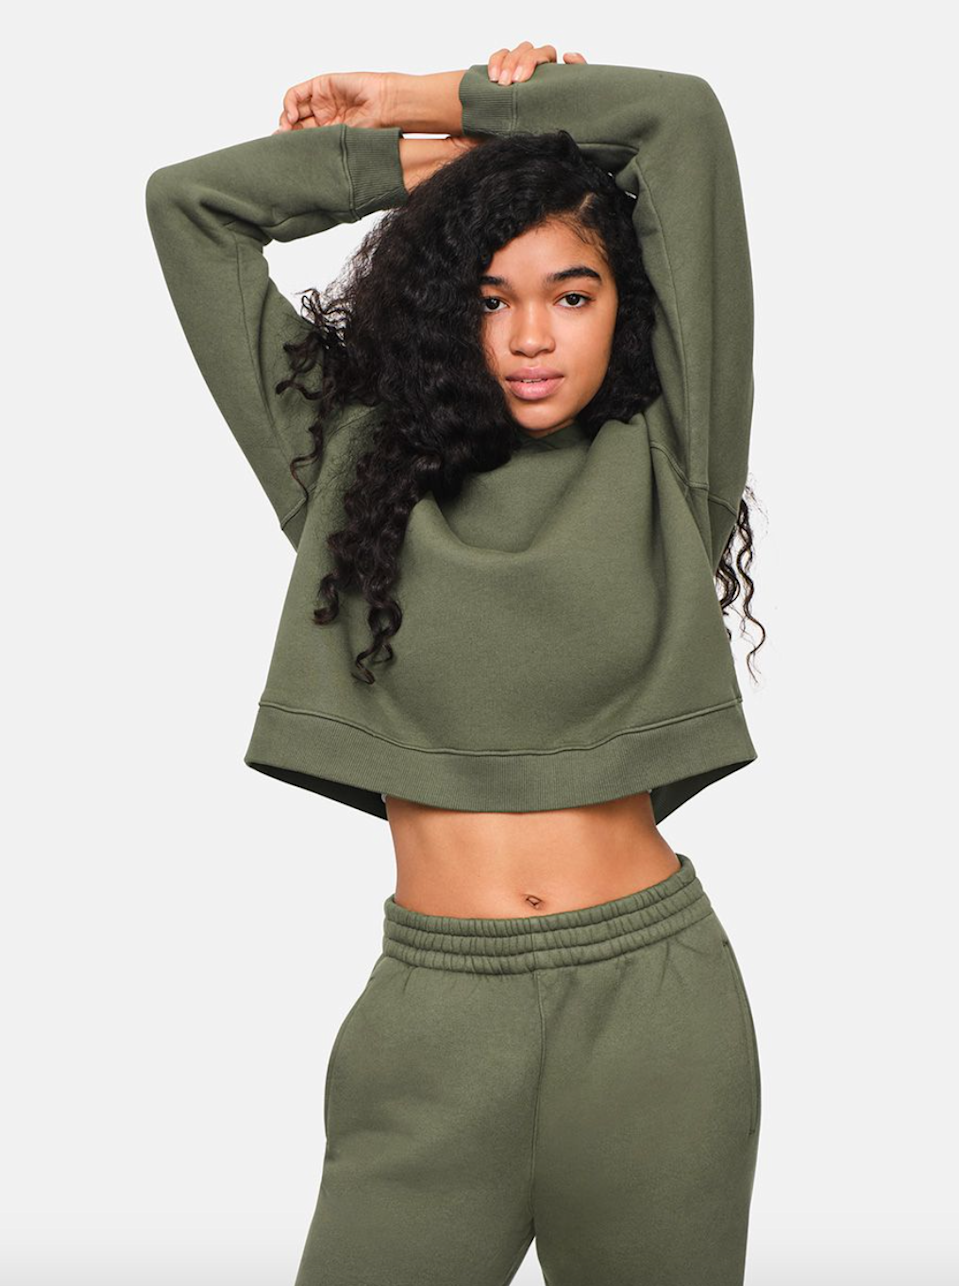 """<h3><strong>Nimbus Cropped Hoodie</strong></h3><br>Any lucky giftee will delight in getting all wrapped up inside the softest (and most stylish) of fleecy snuggles.<br><br><strong>Outdoor Voices</strong> Nimbus Cropped Hoodie, $, available at <a href=""""https://go.skimresources.com/?id=30283X879131&url=https%3A%2F%2Fwww.outdoorvoices.com%2Fproducts%2Fw-Nimbus-Cropped-Hoodie%3Fvariant%3D32645377654862"""" rel=""""nofollow noopener"""" target=""""_blank"""" data-ylk=""""slk:Outdoor Voices"""" class=""""link rapid-noclick-resp"""">Outdoor Voices</a>"""